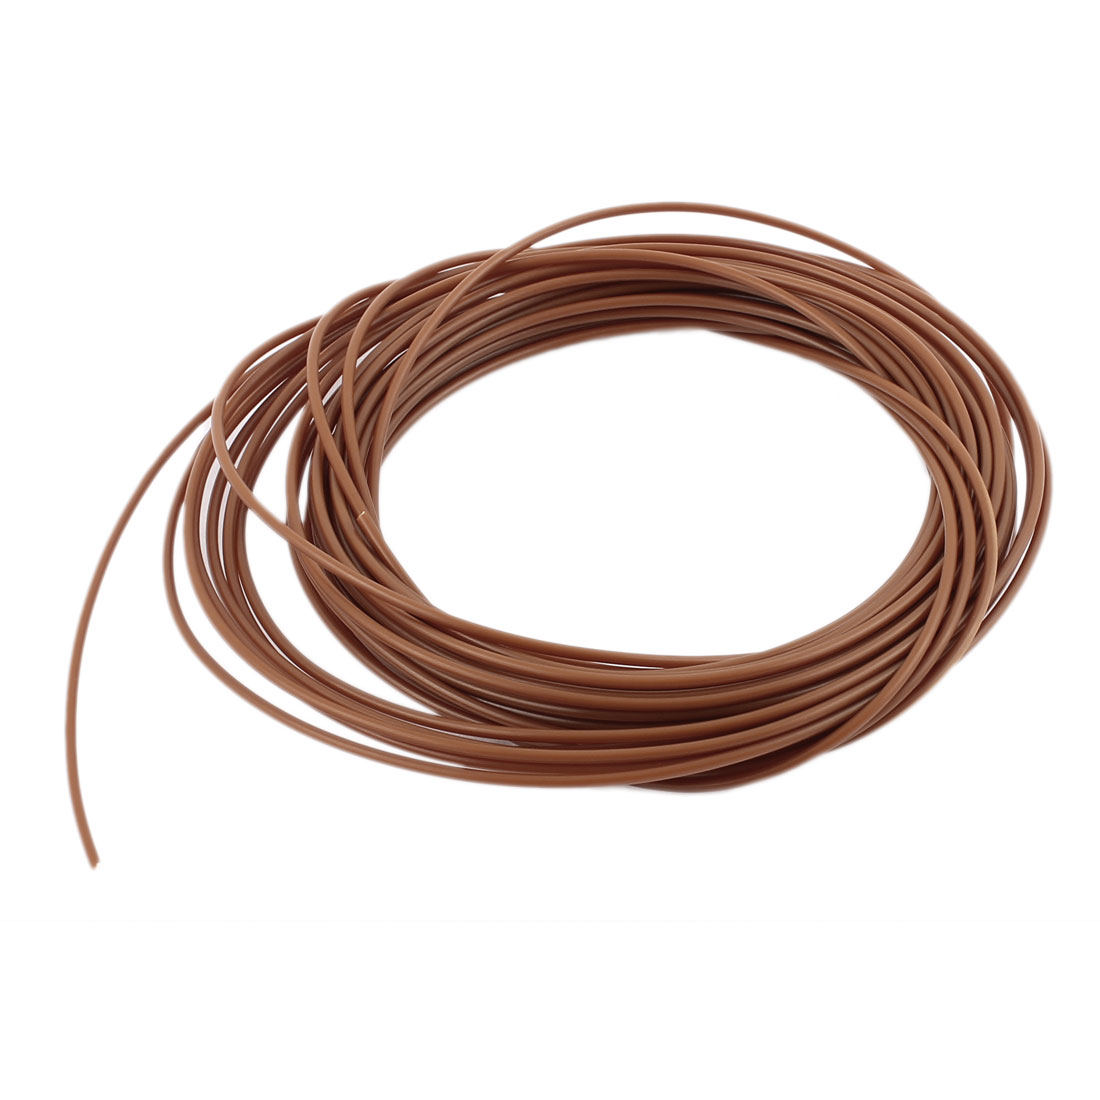 10m 3D Printer Pen Painting Filament Refills ABS Printing Material Brown